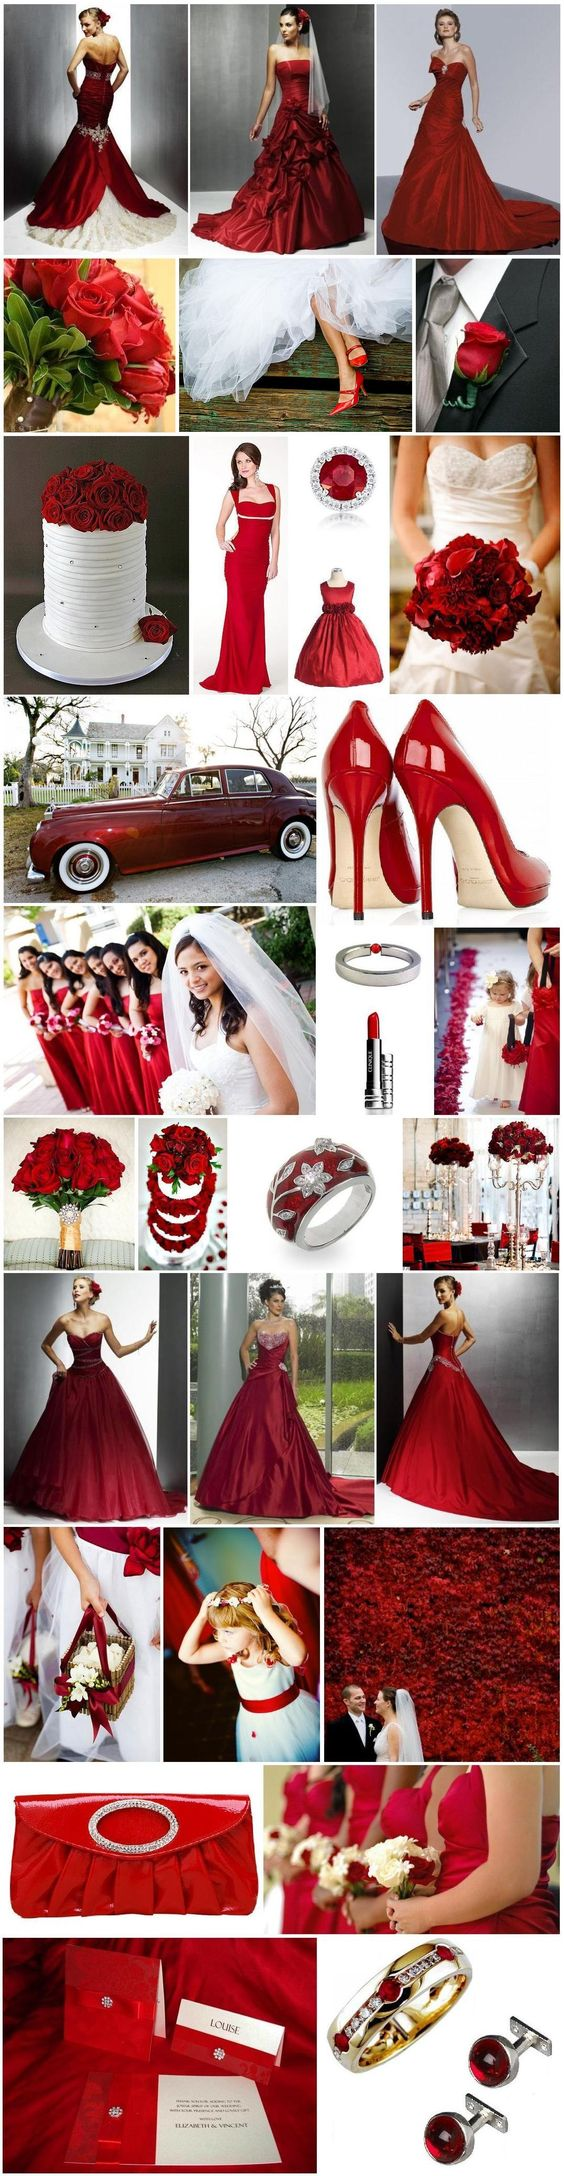 Red Inspiration  http://blacktieweddinginvitations.com.au/blog/archives/3096: